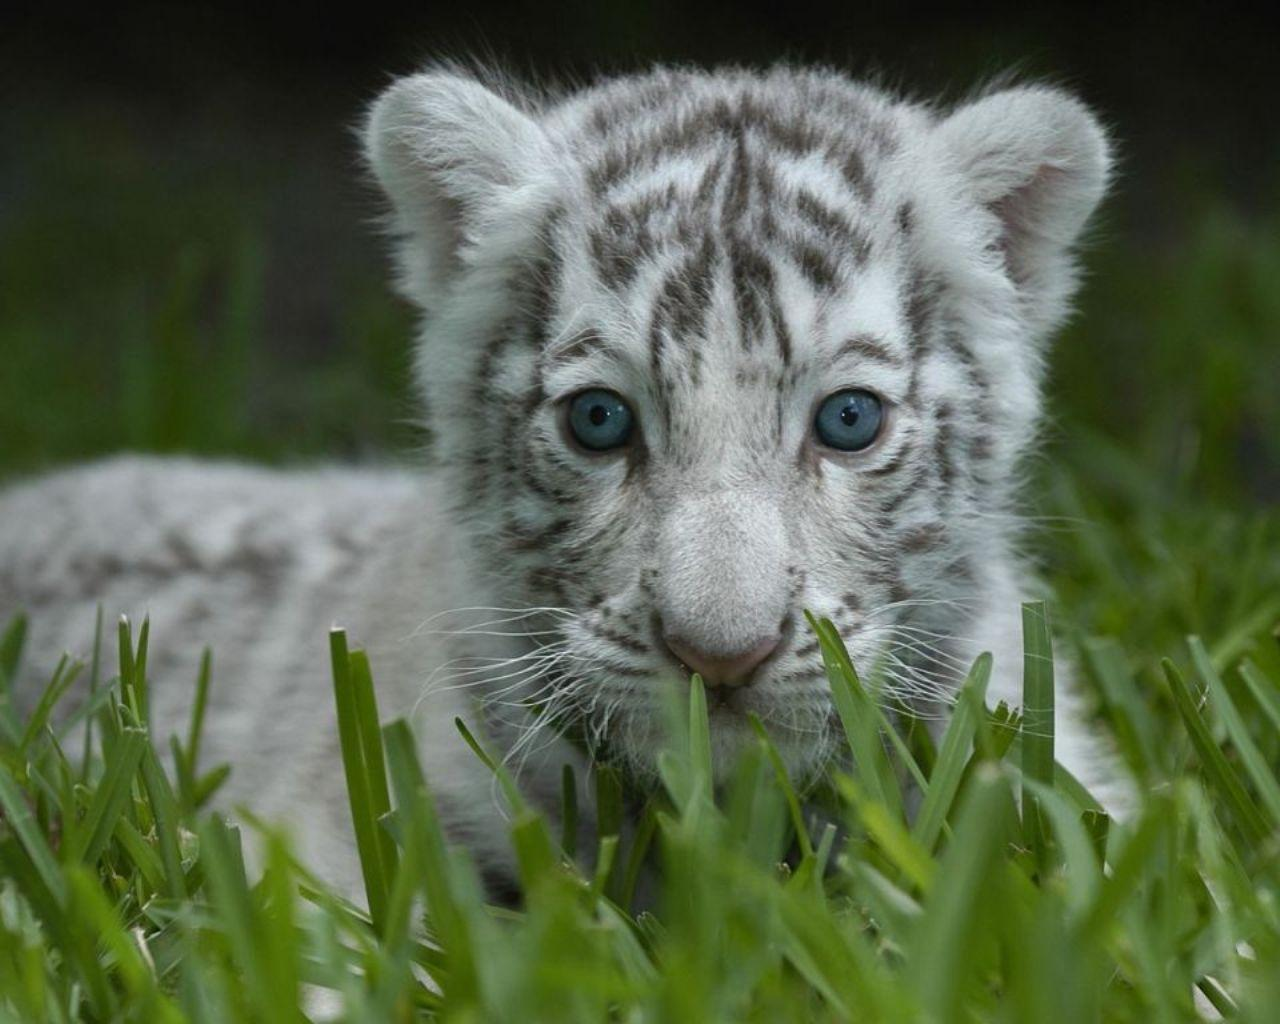 White Tiger Cub Wallpapers 1280x1024